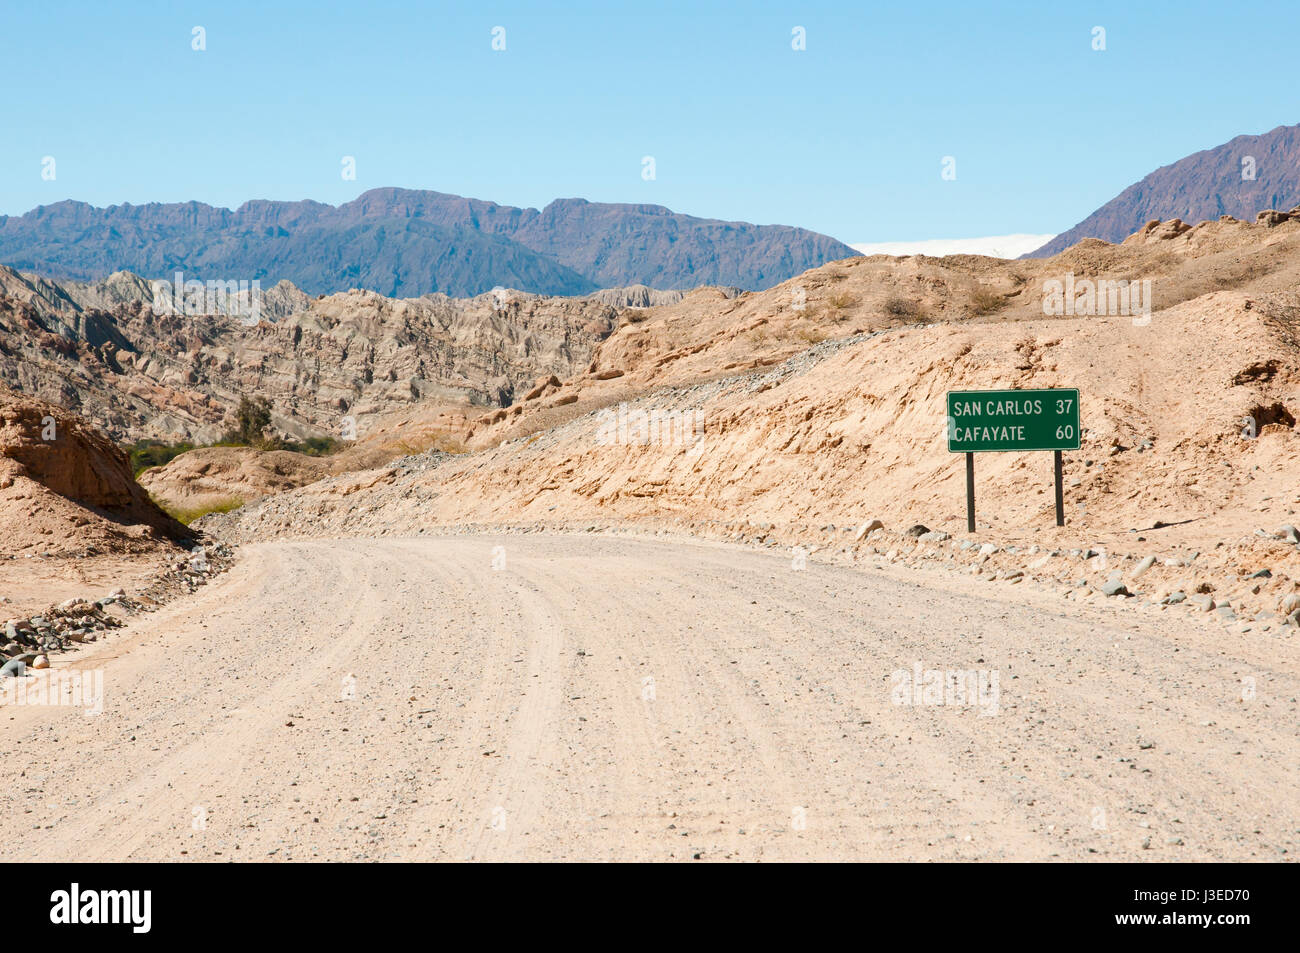 Gravel Road on Route 40 - Salta - Argentina - Stock Image